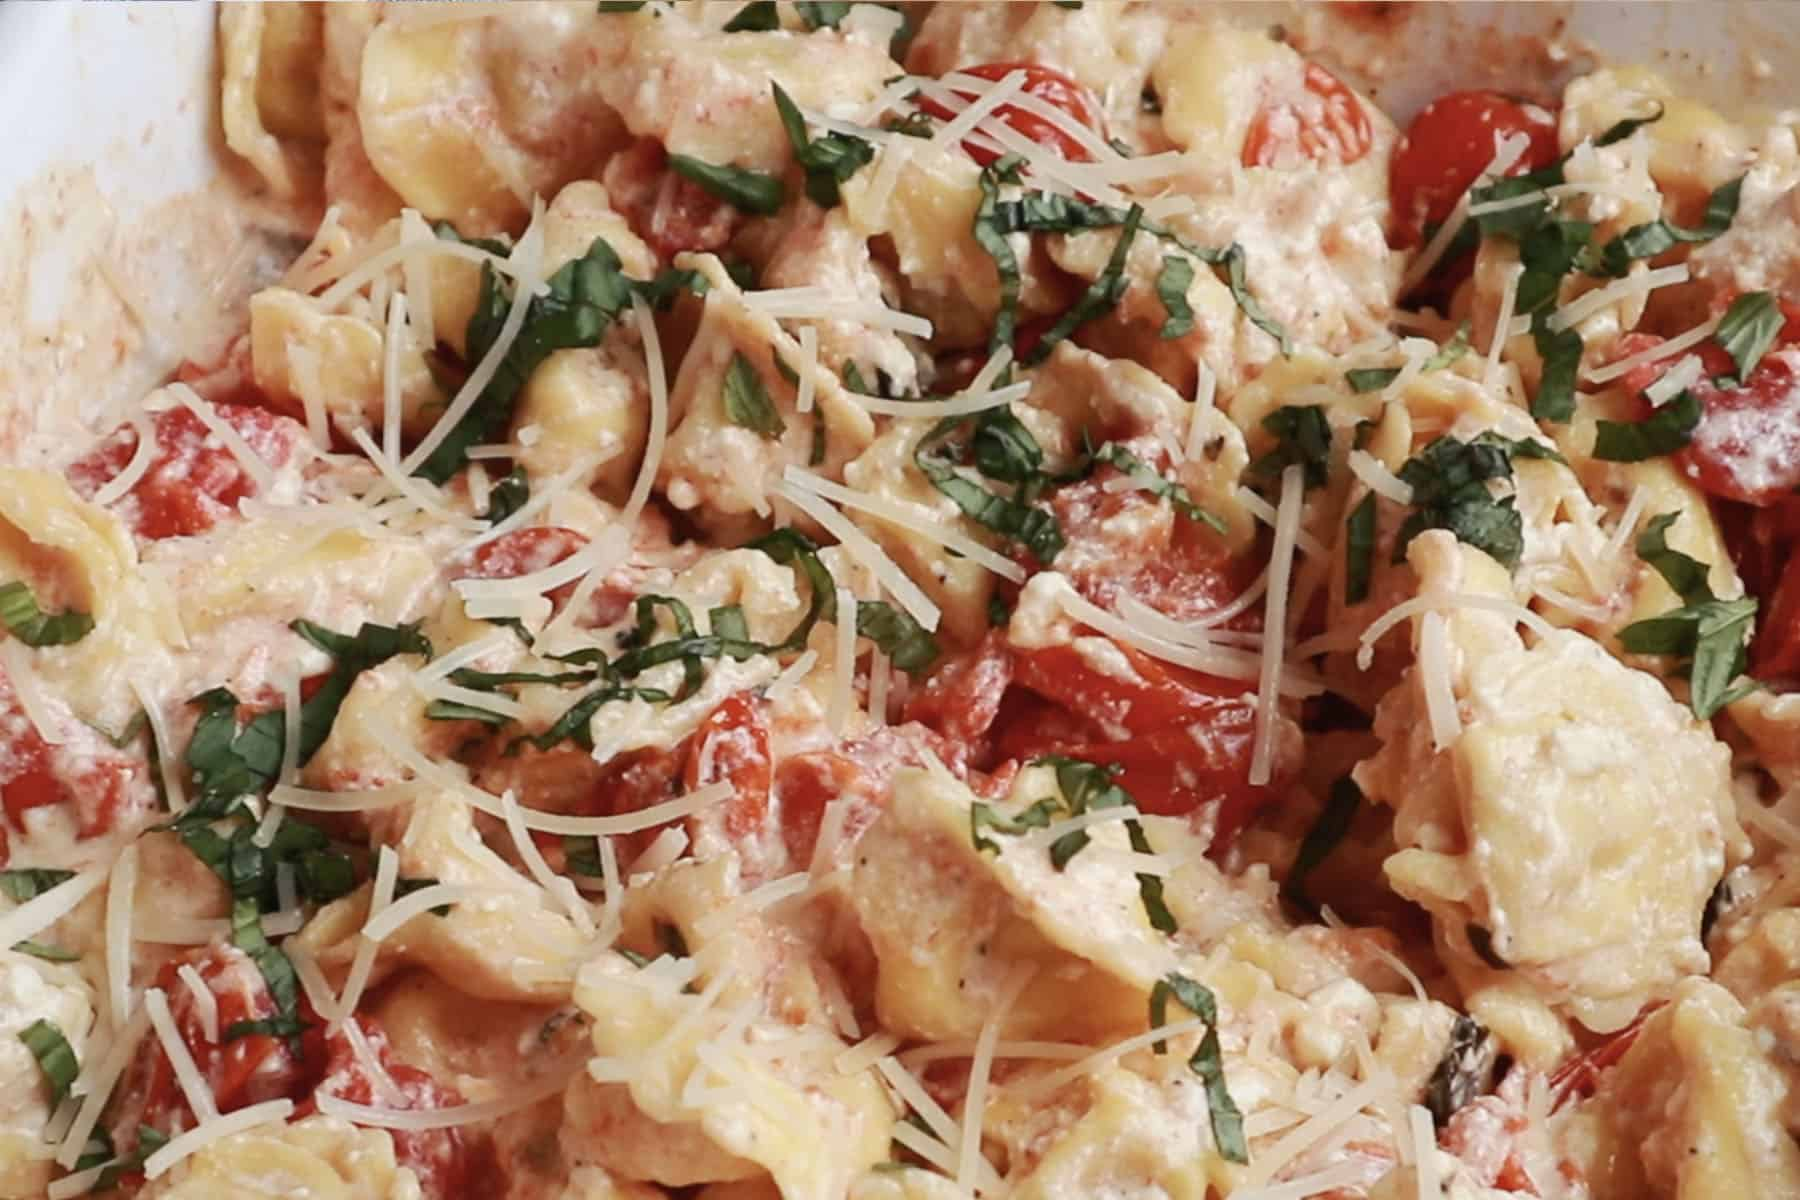 Feta pasta made with tortellini and garnished with Parmesan cheese and fresh basil.